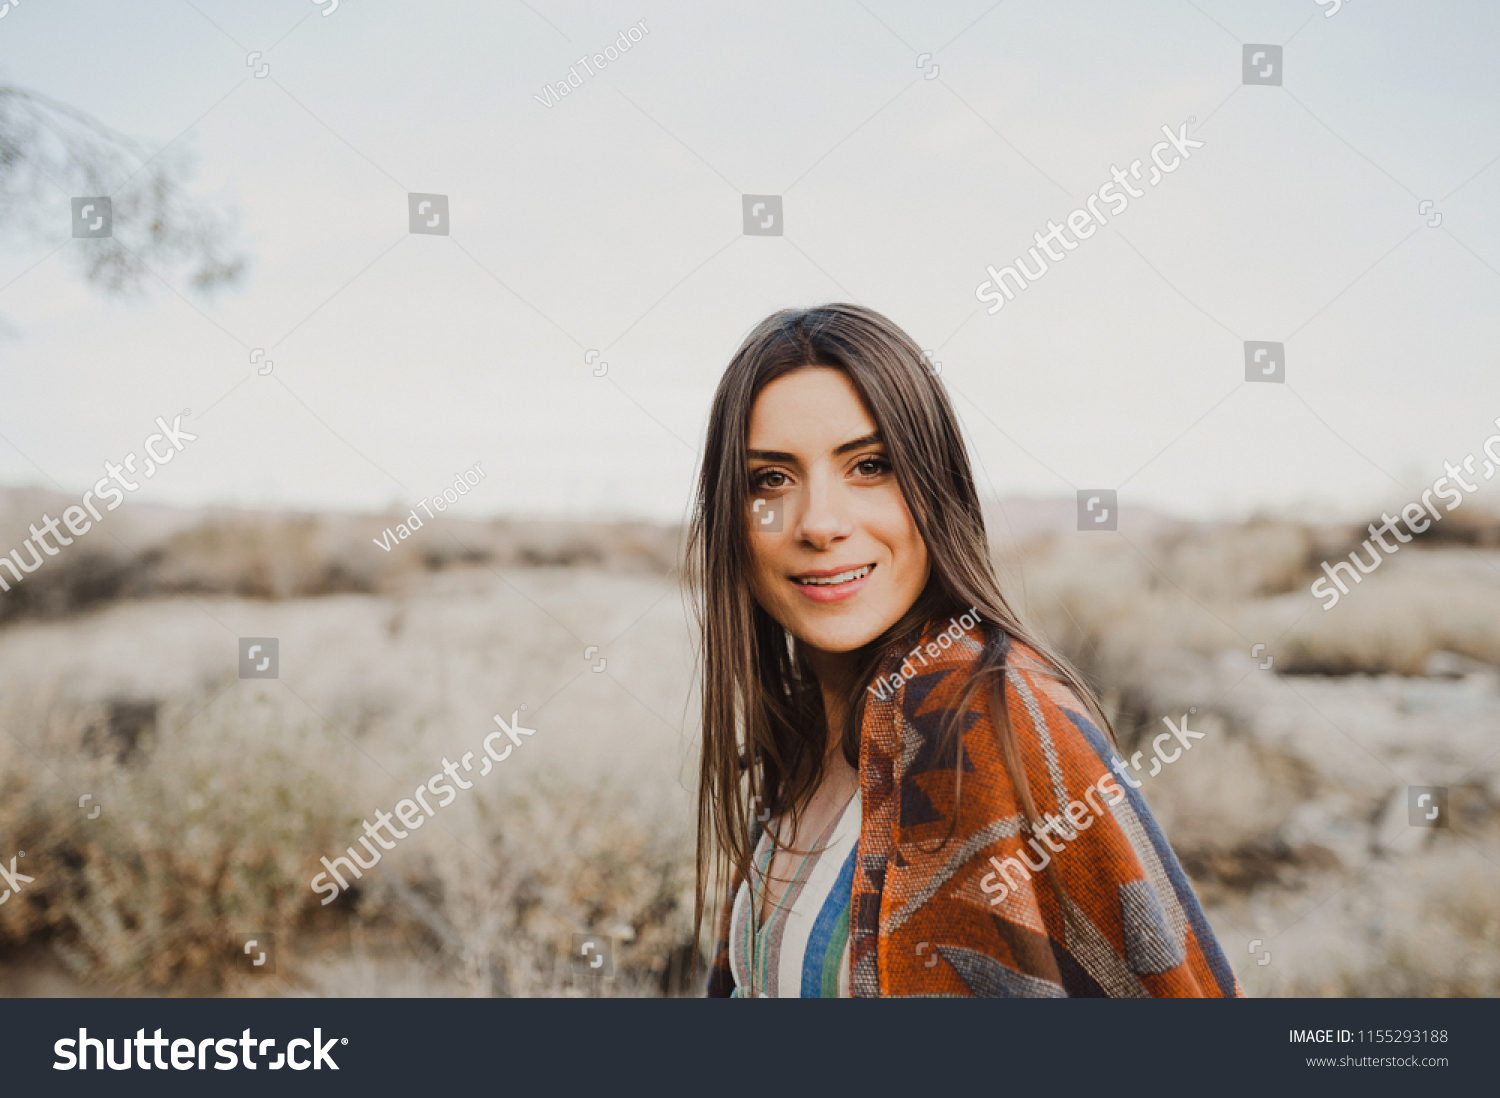 Smiling, beautiful hipster traveler girl in gypsy look and windy hair, in desert nature